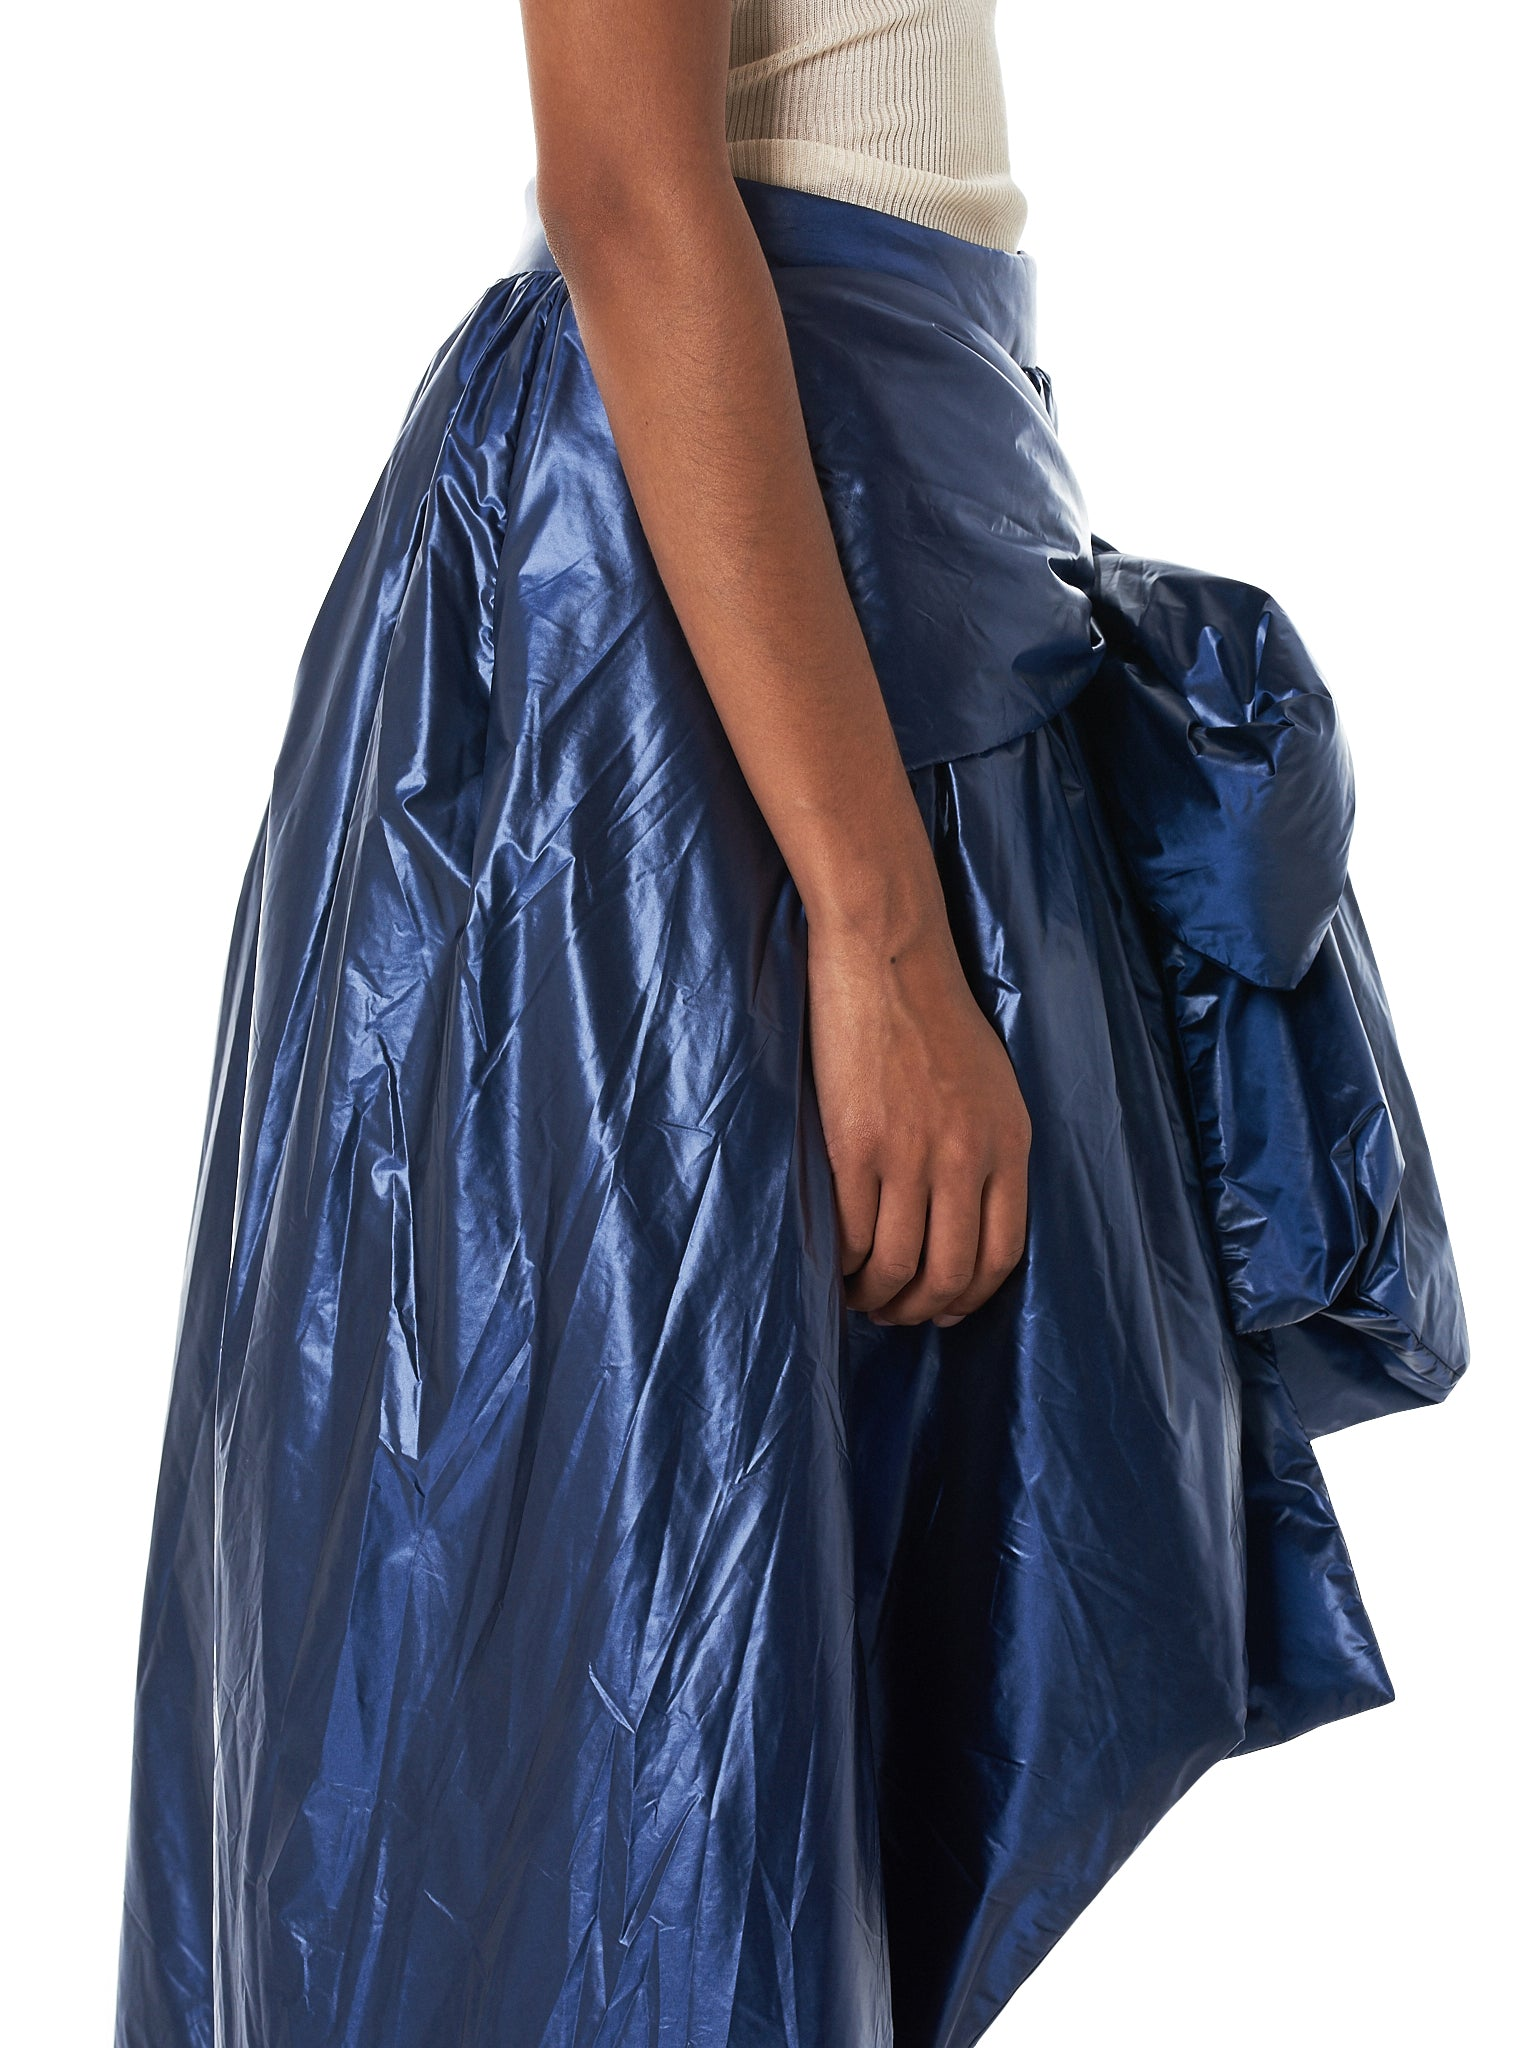 Bowed Metallic Puffer Skirt (039-PA04-NAVY)